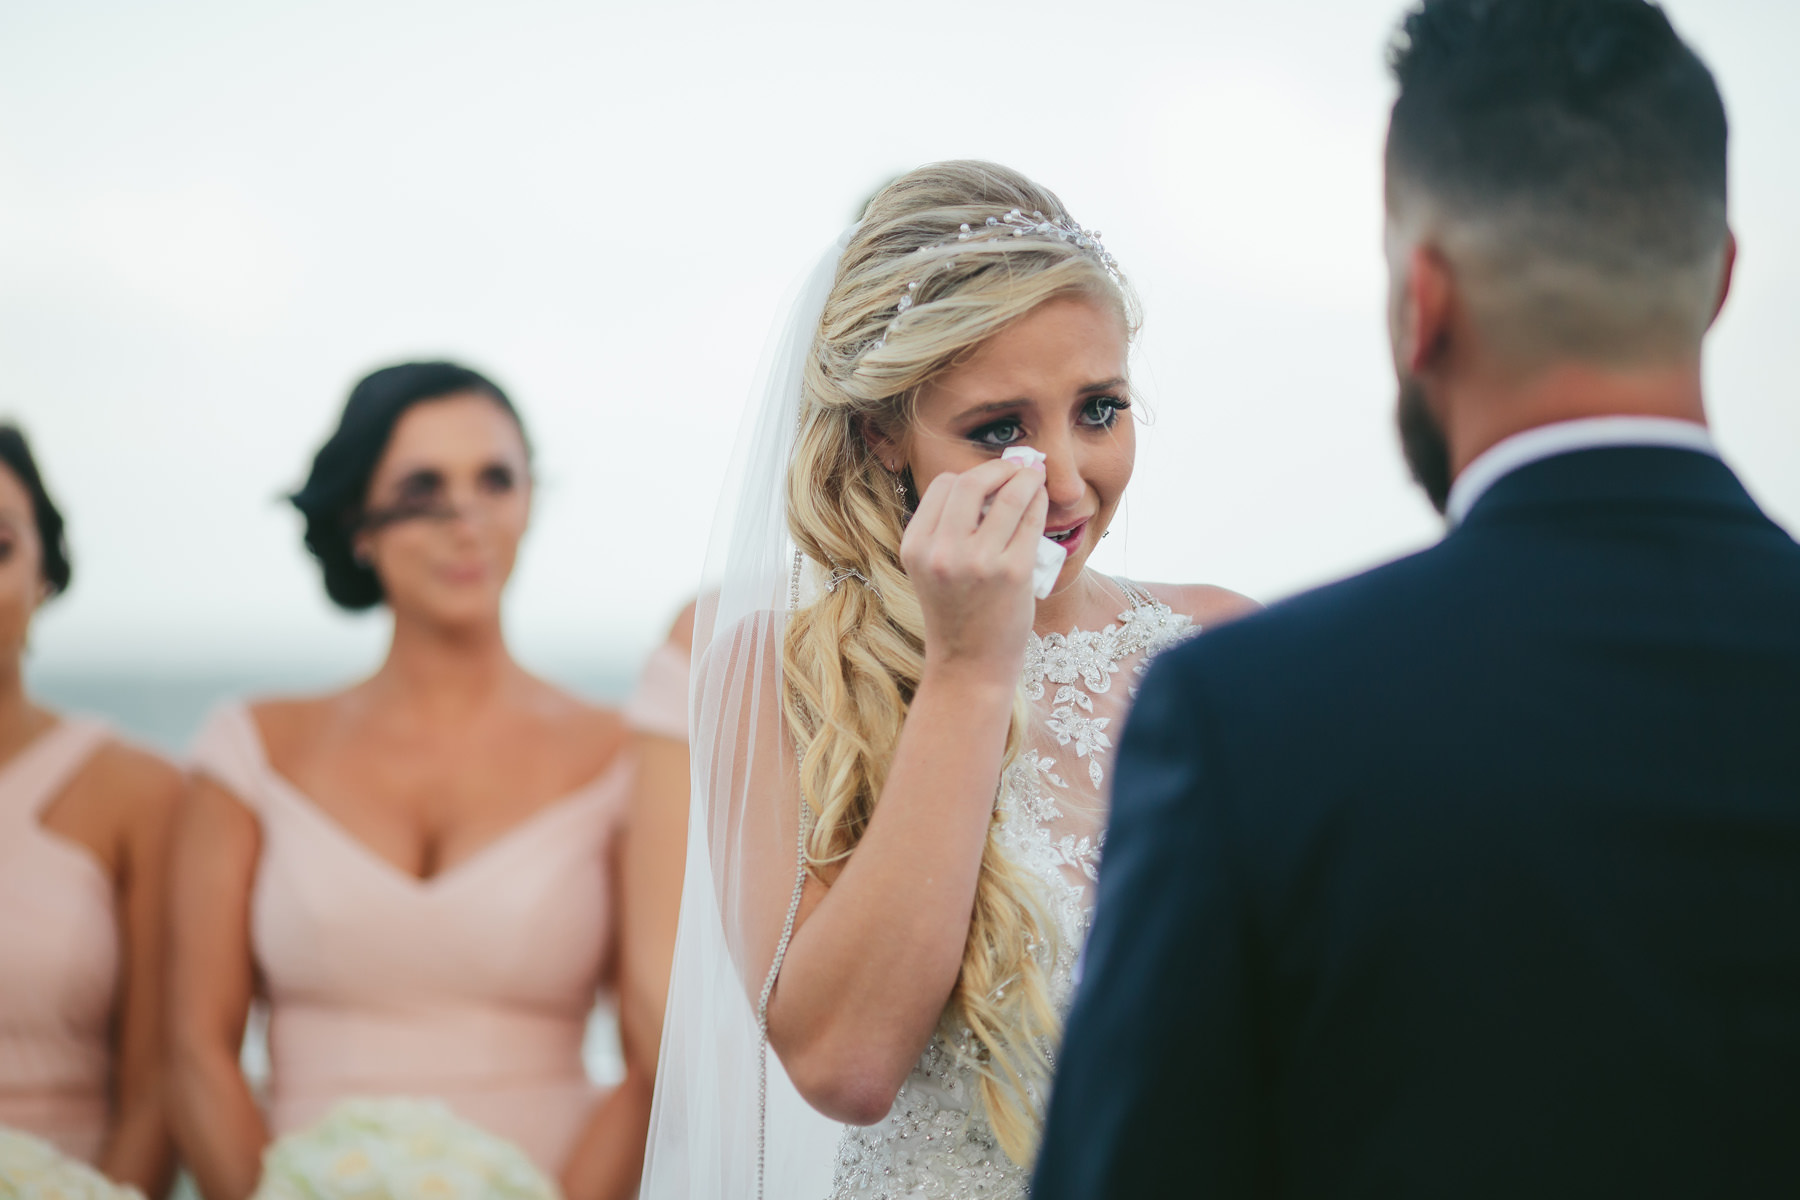 bride-emotional-ceremony-tears-tiny-house-photo-moments-florida-wedding-photographer.jpg